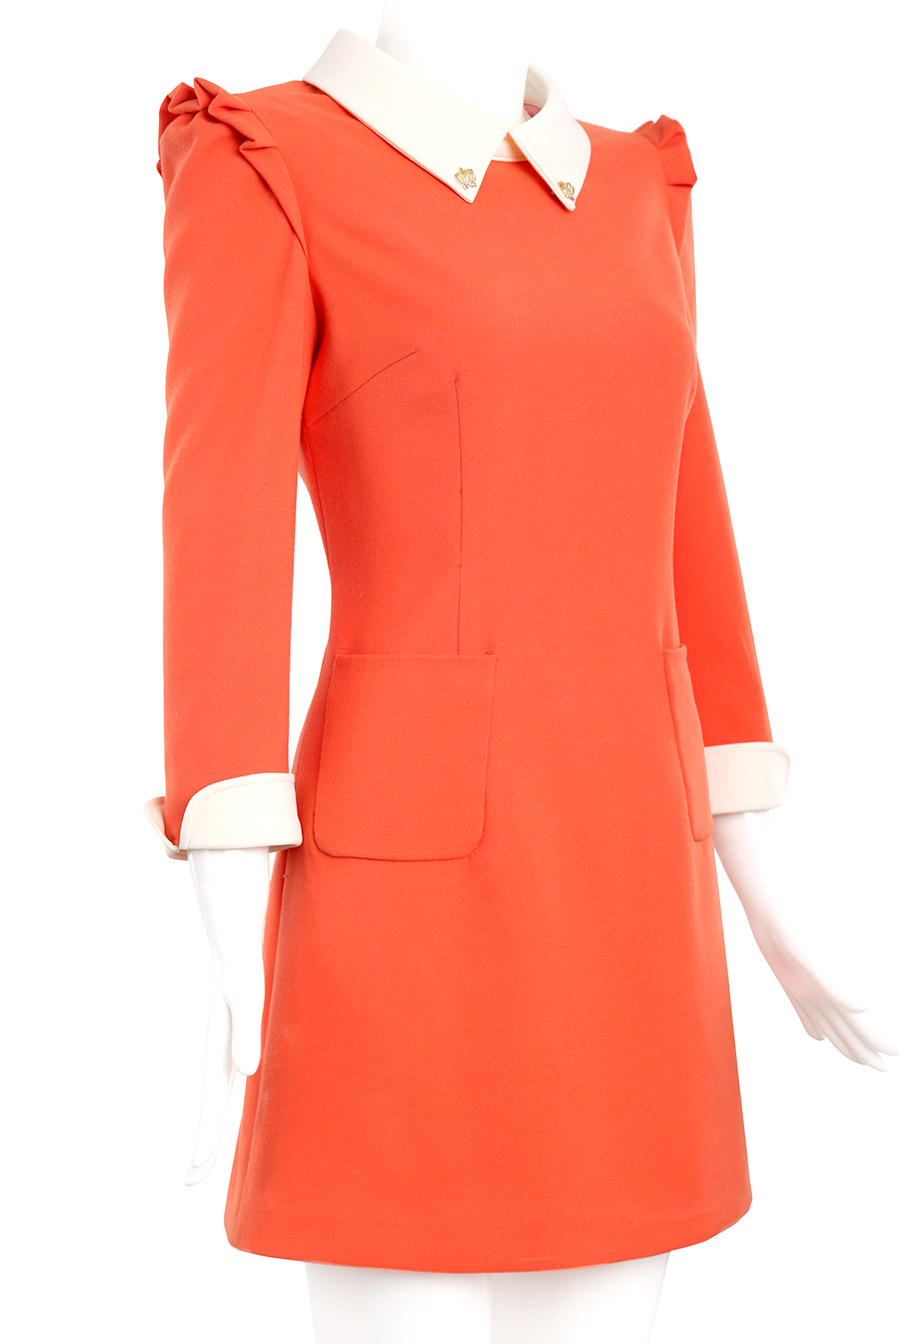 Orange Contrast Lapel Long Sleeve Slim Dress - Sheinside.com